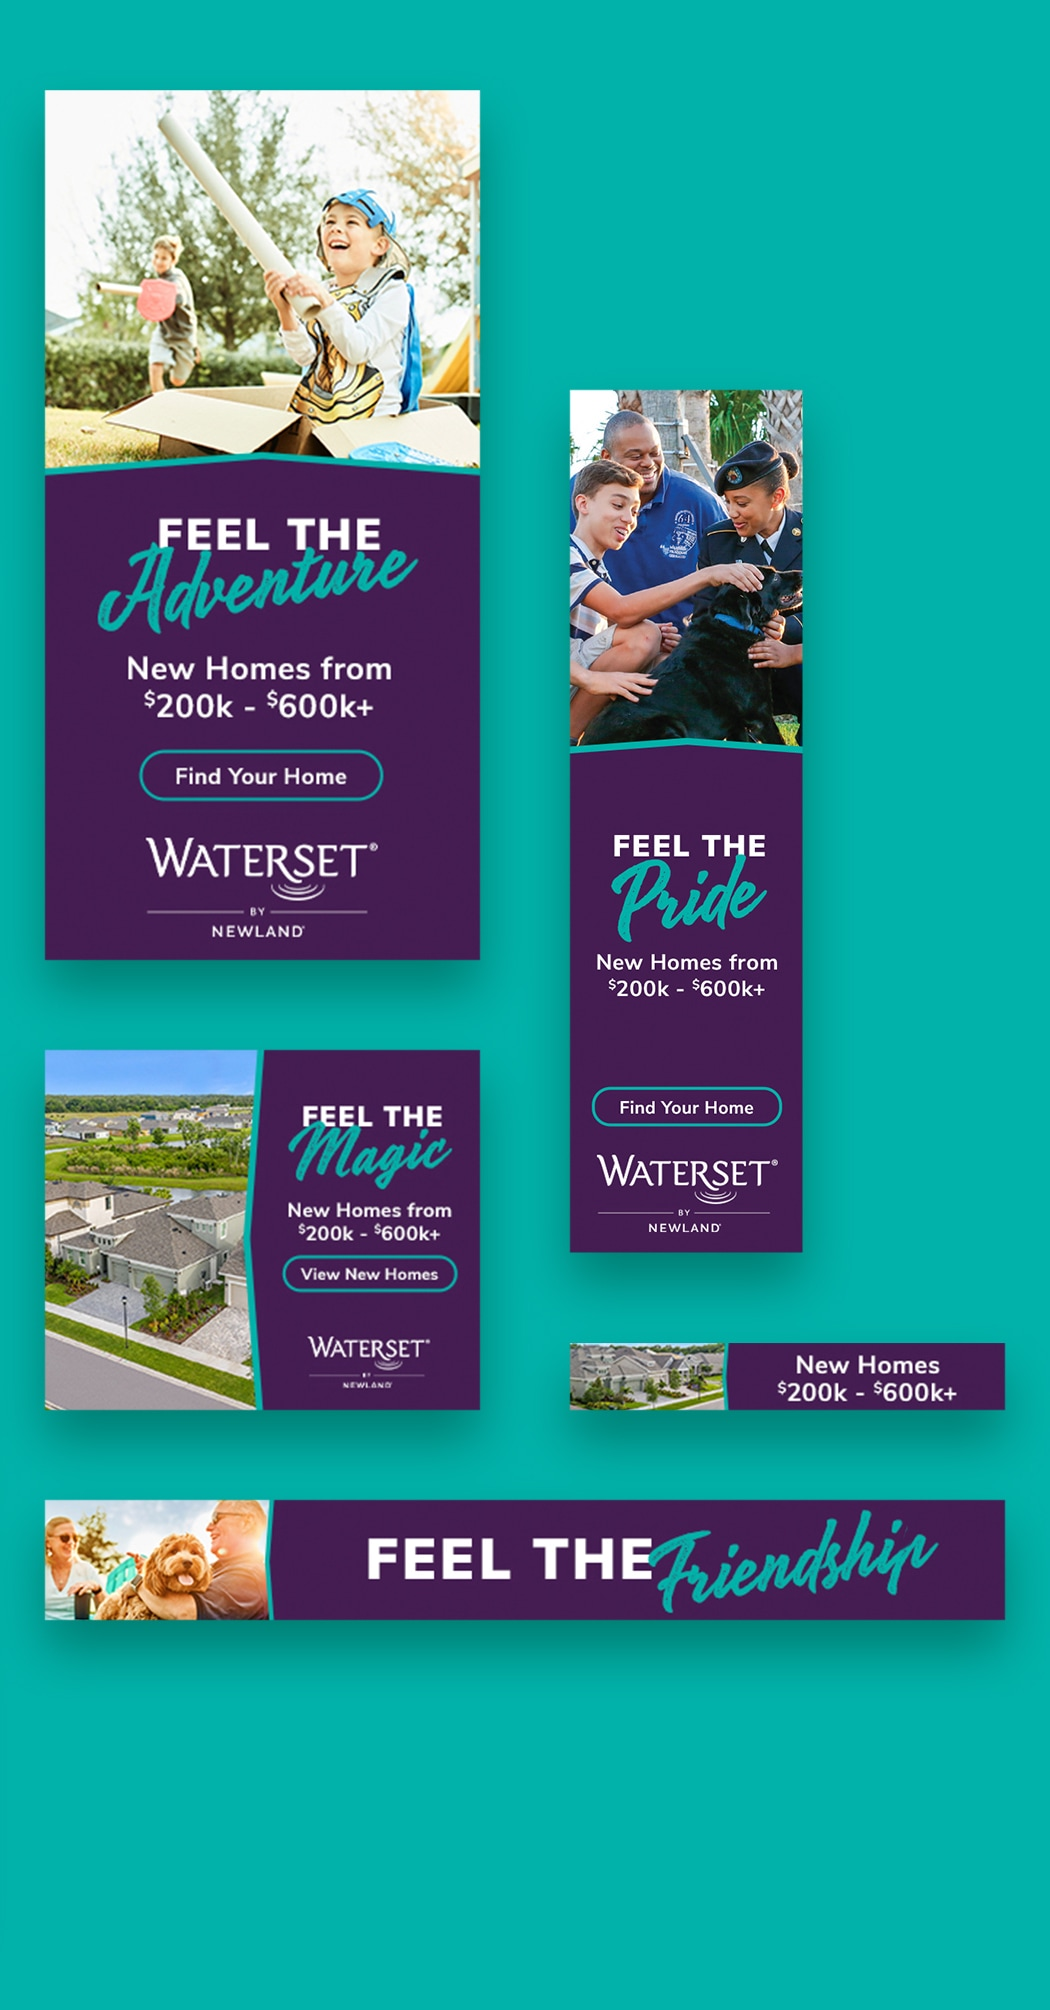 Collage of various Waterset Digital Display ads